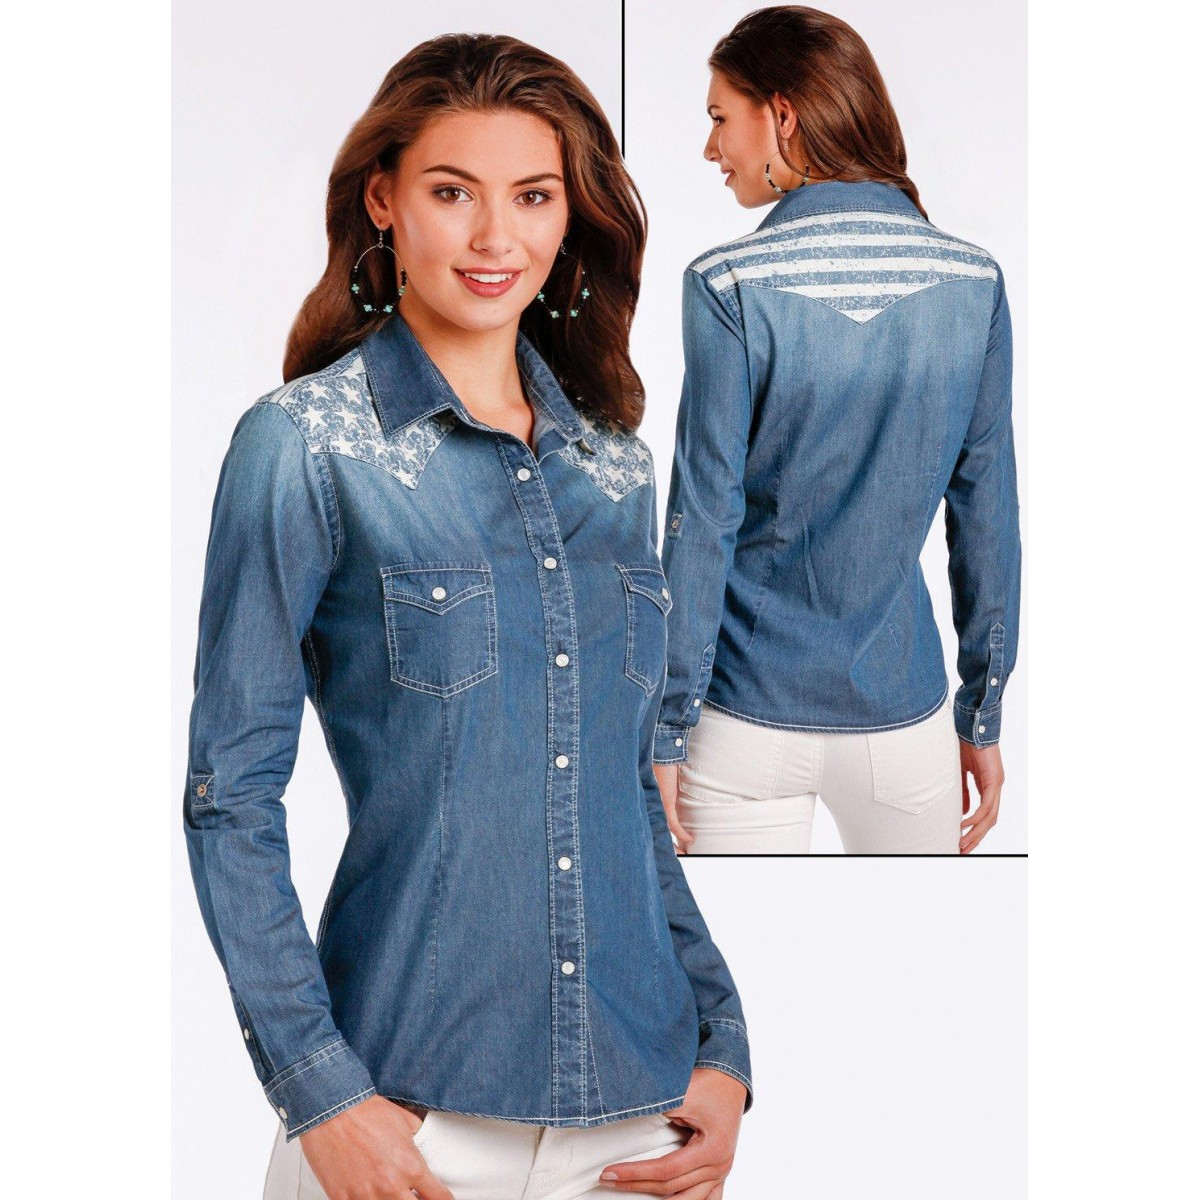 599ccb64dd CAMICIA JEANS DONNA ROUGH STOCK PANHANDLE SLIM